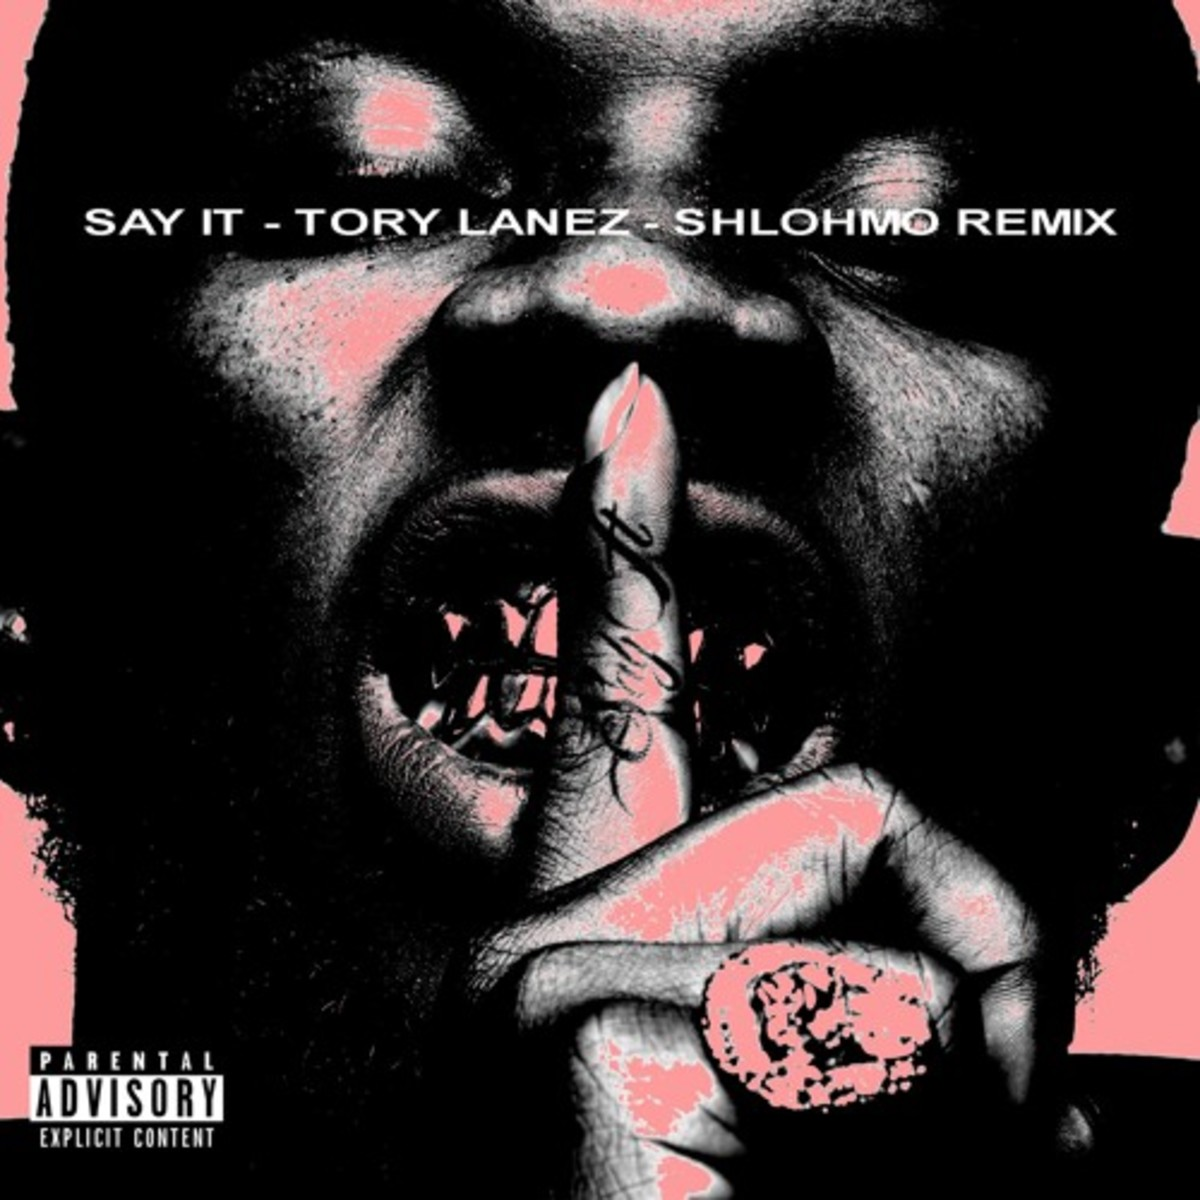 tory-lanez-say-it-shlohmo-remix.jpg